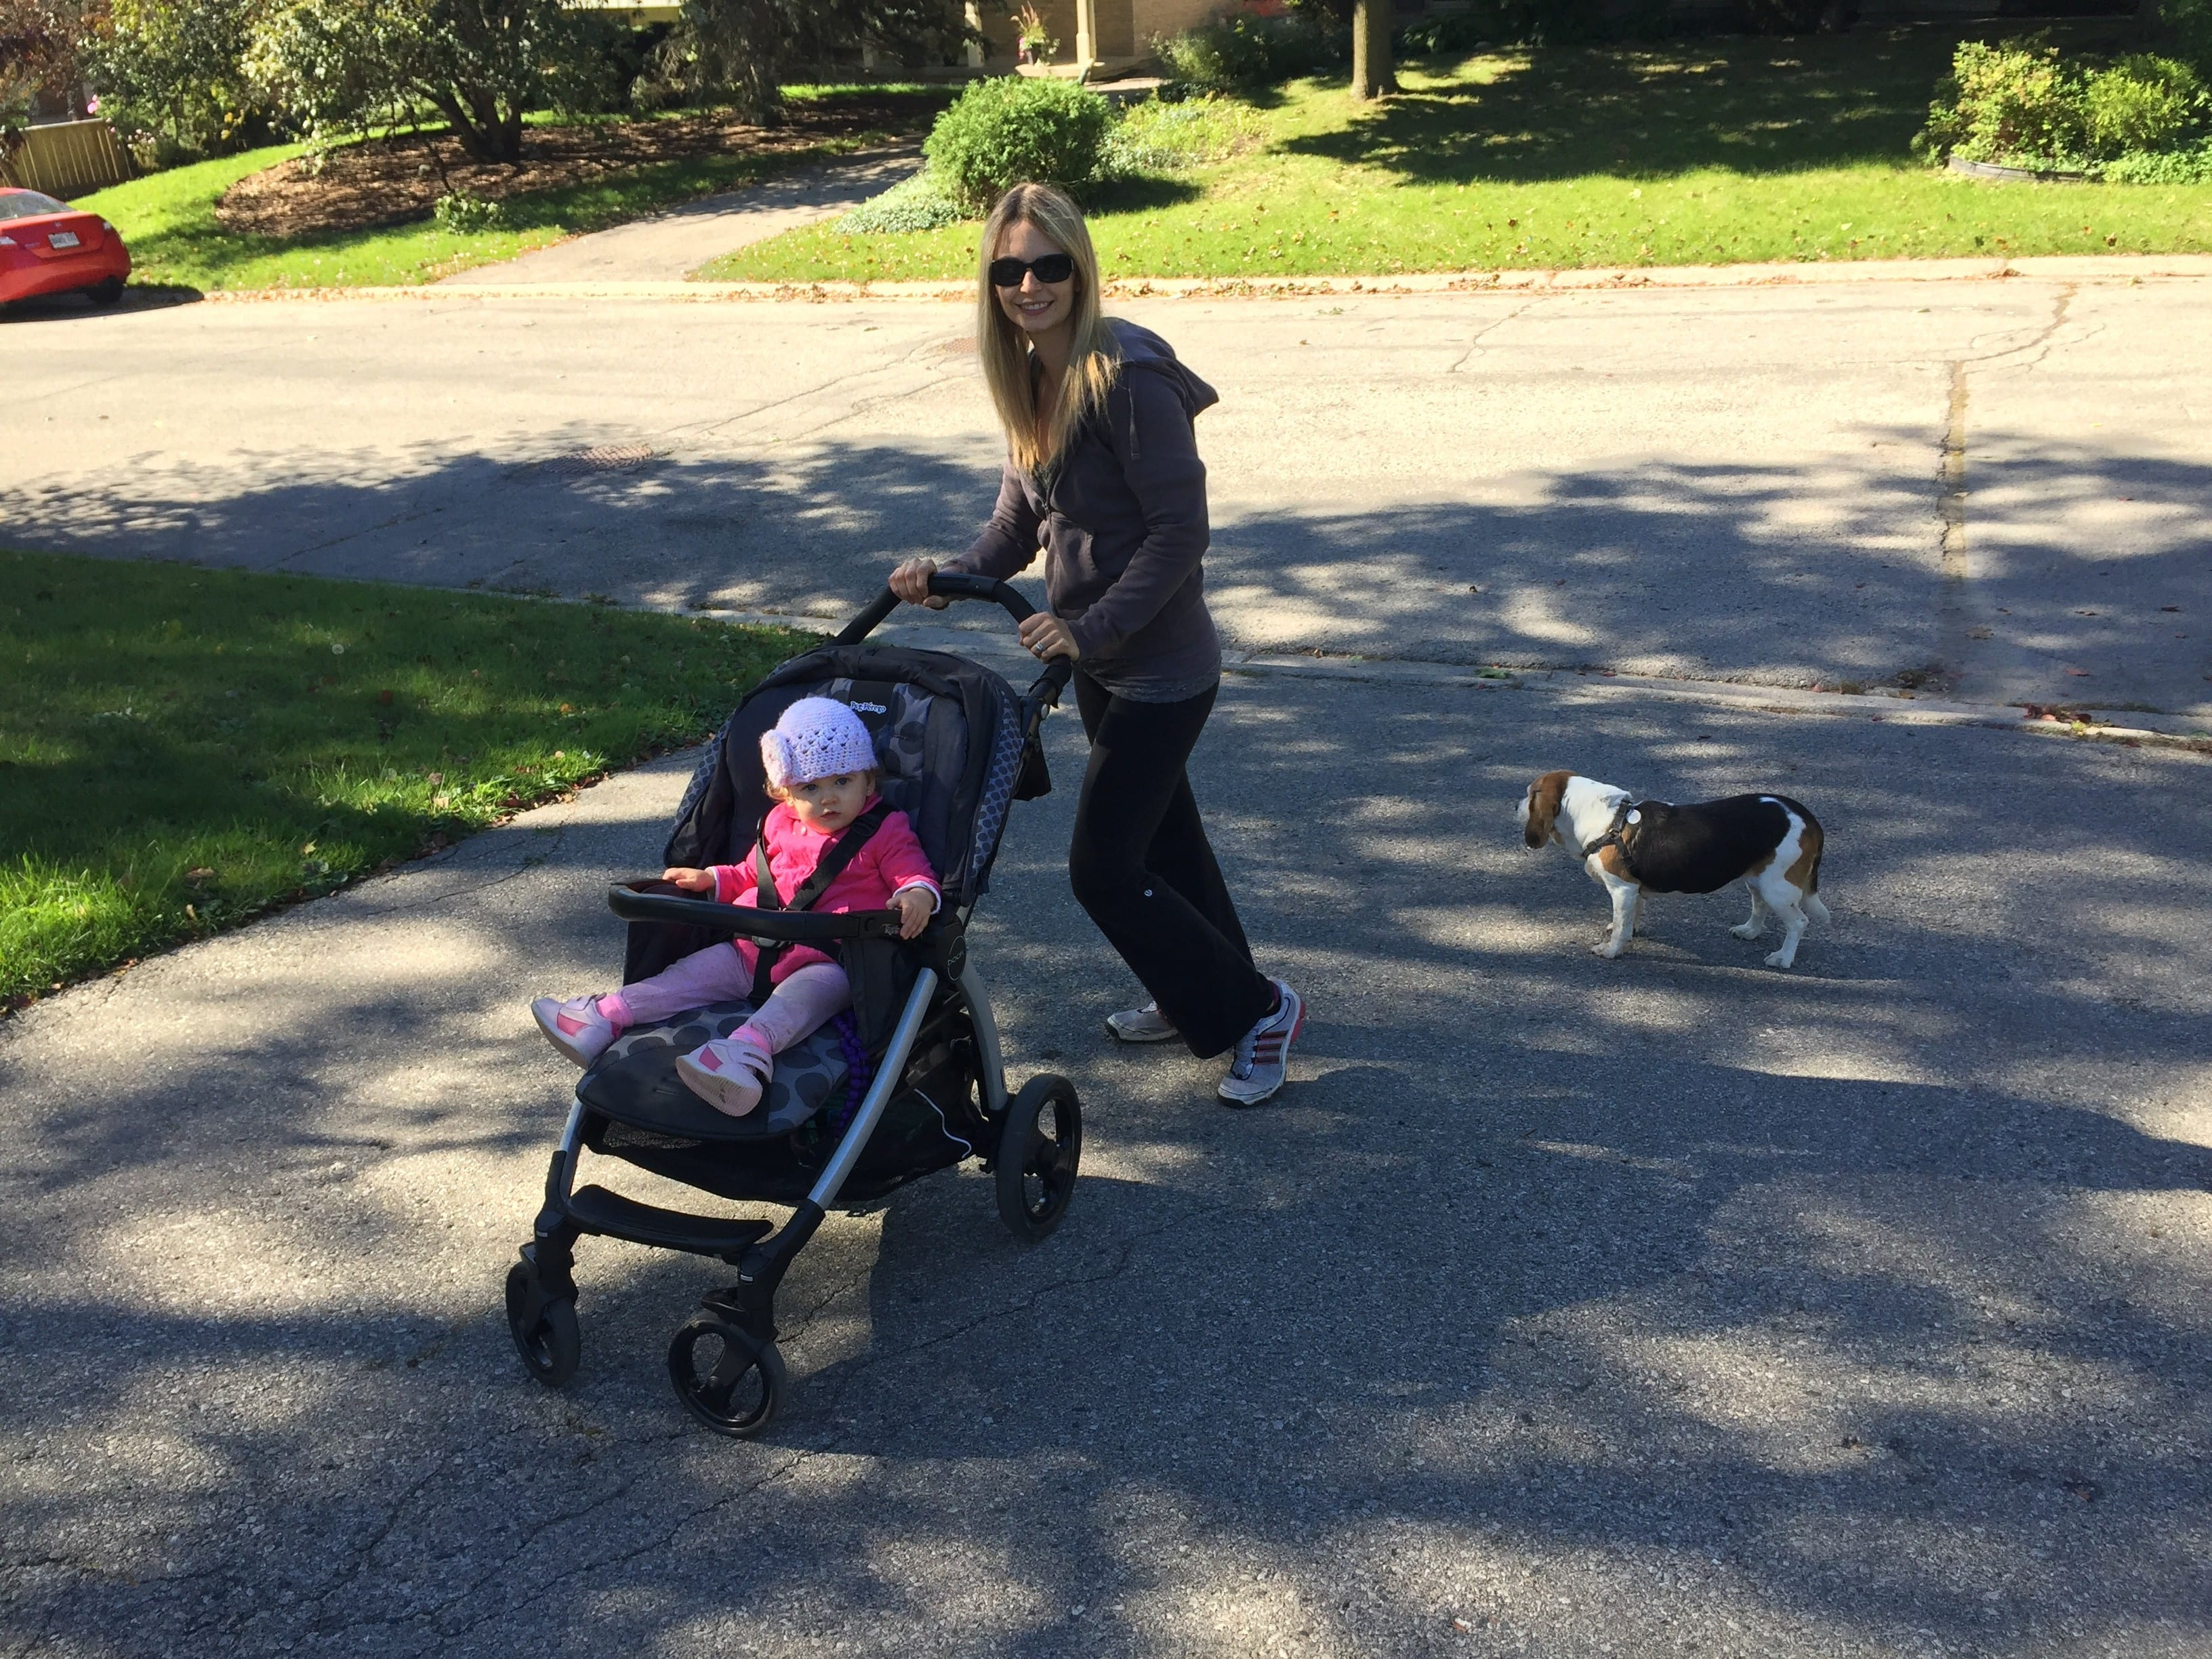 Mom, baby and dog out walking